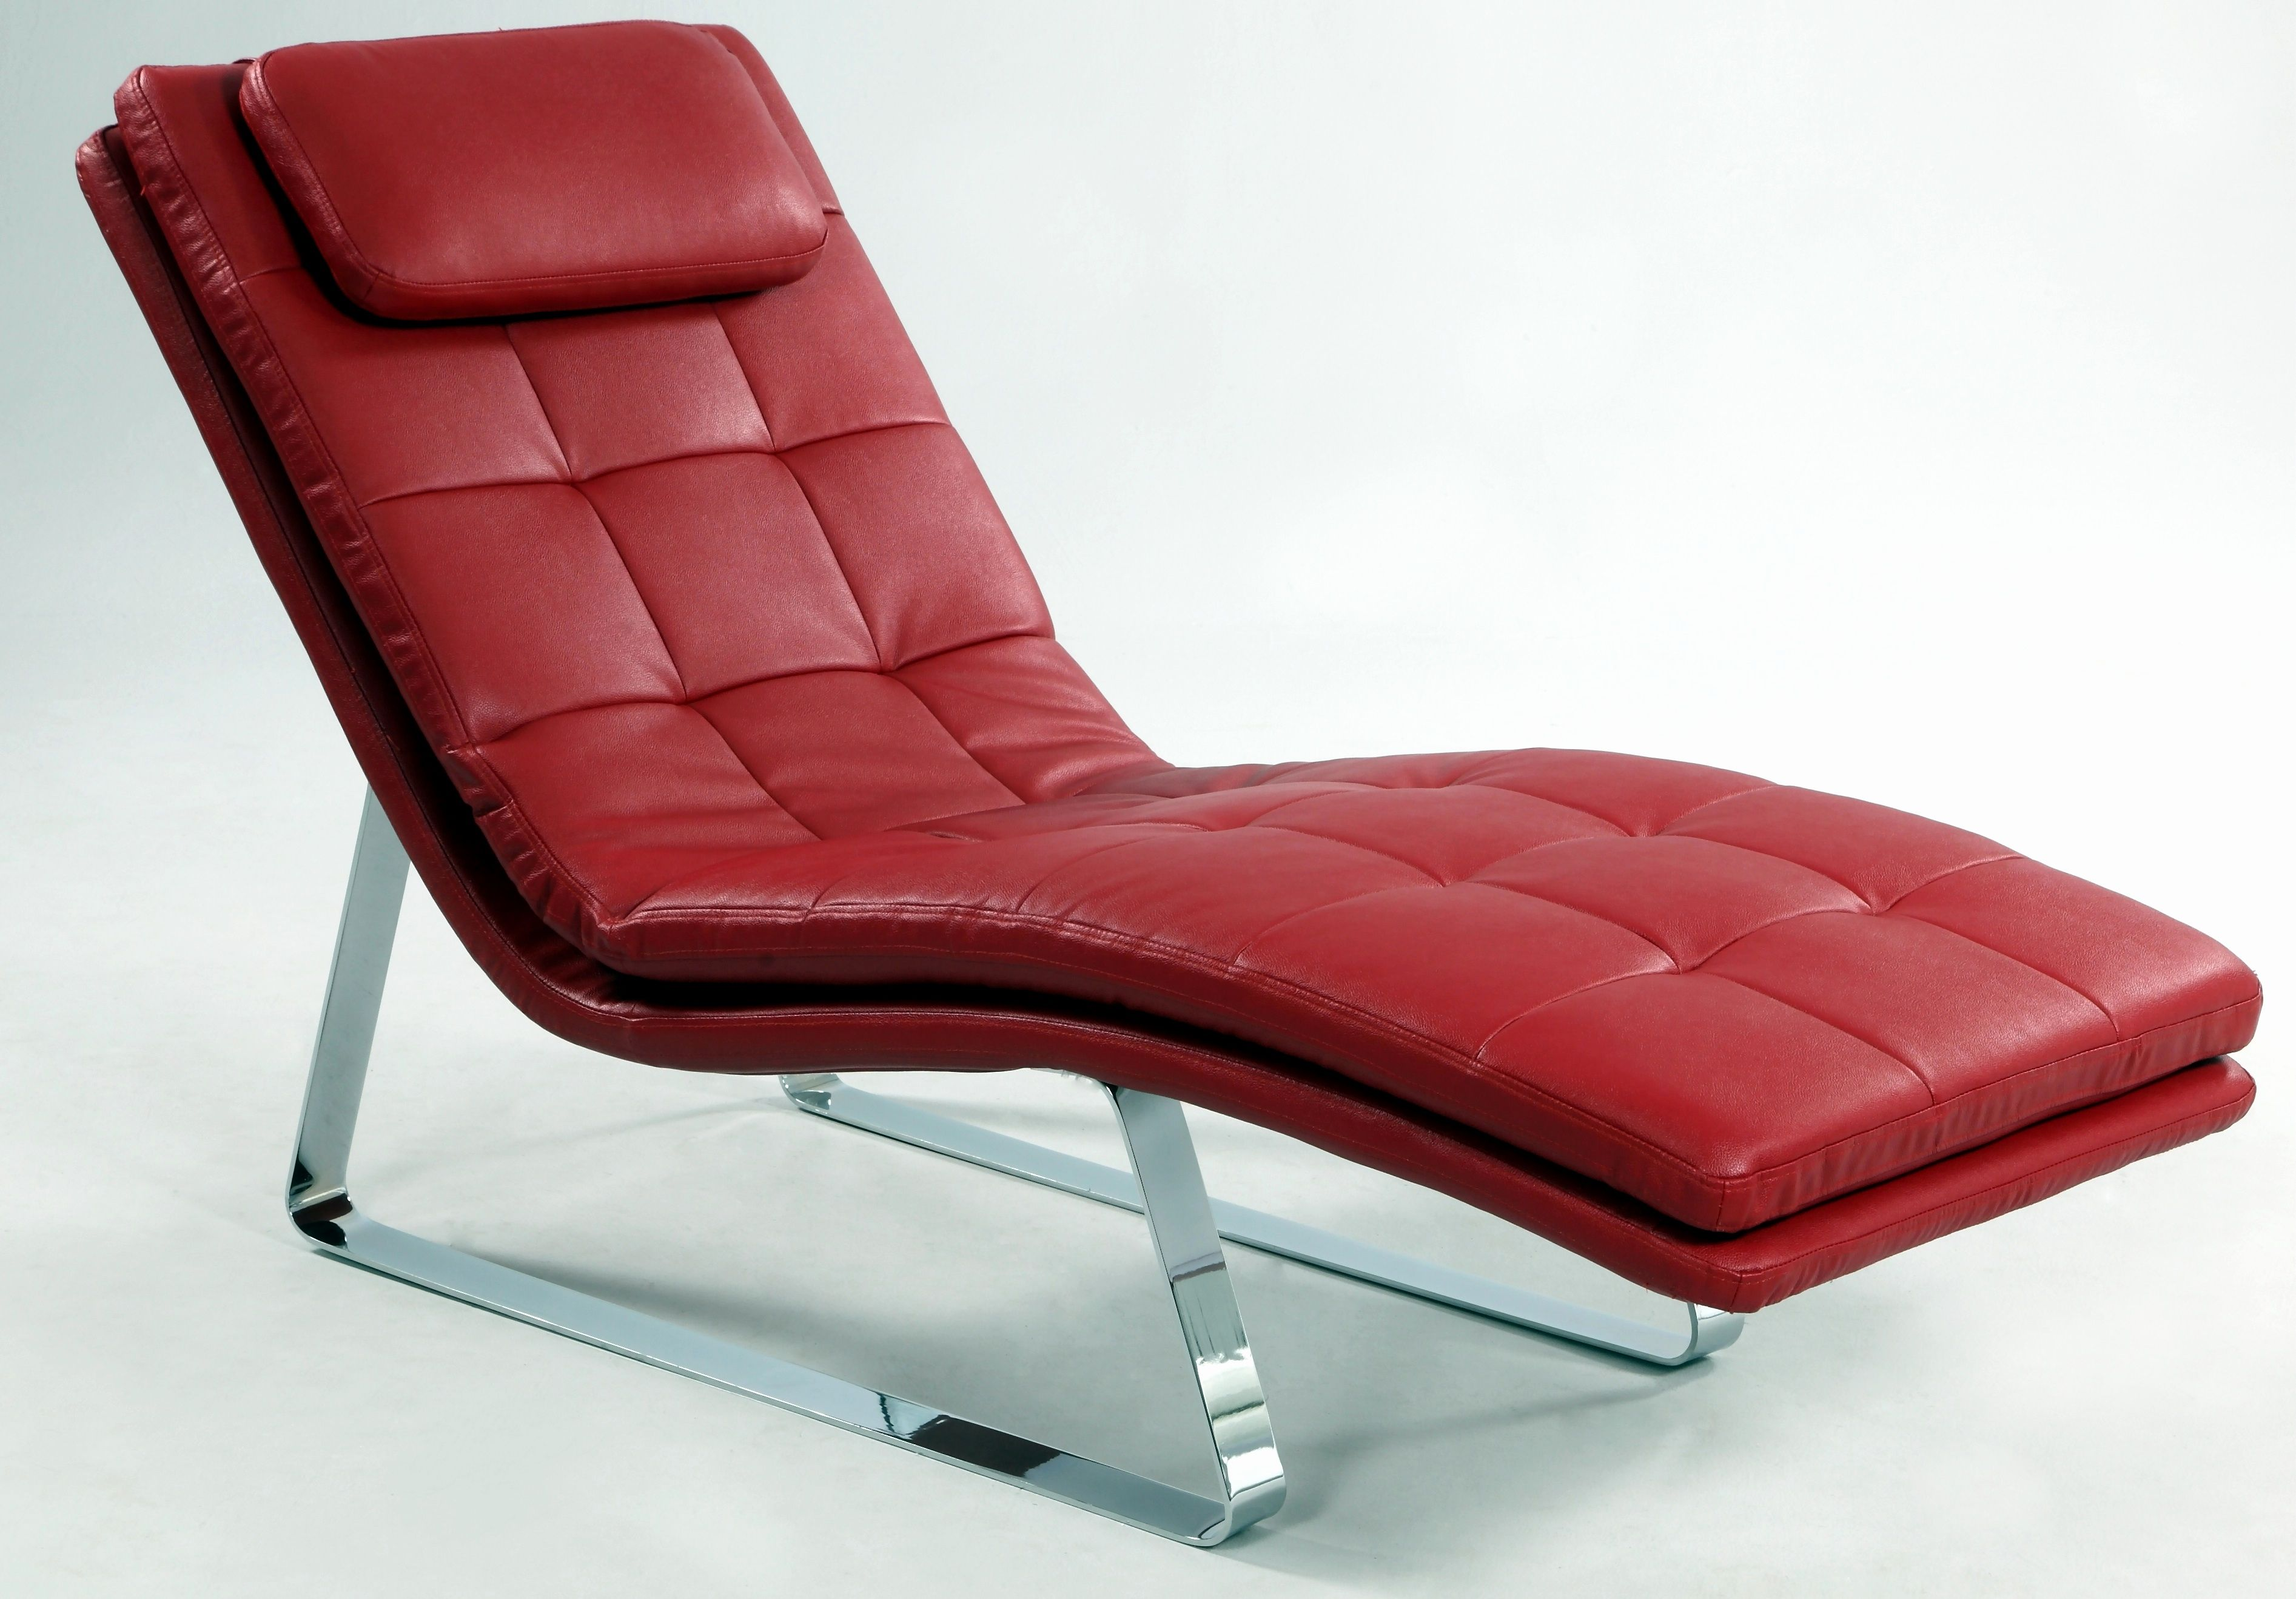 Liege Sessel Chaise Lounge Stühle Liegesessel Chaiselongue Leder Chaise Lounge